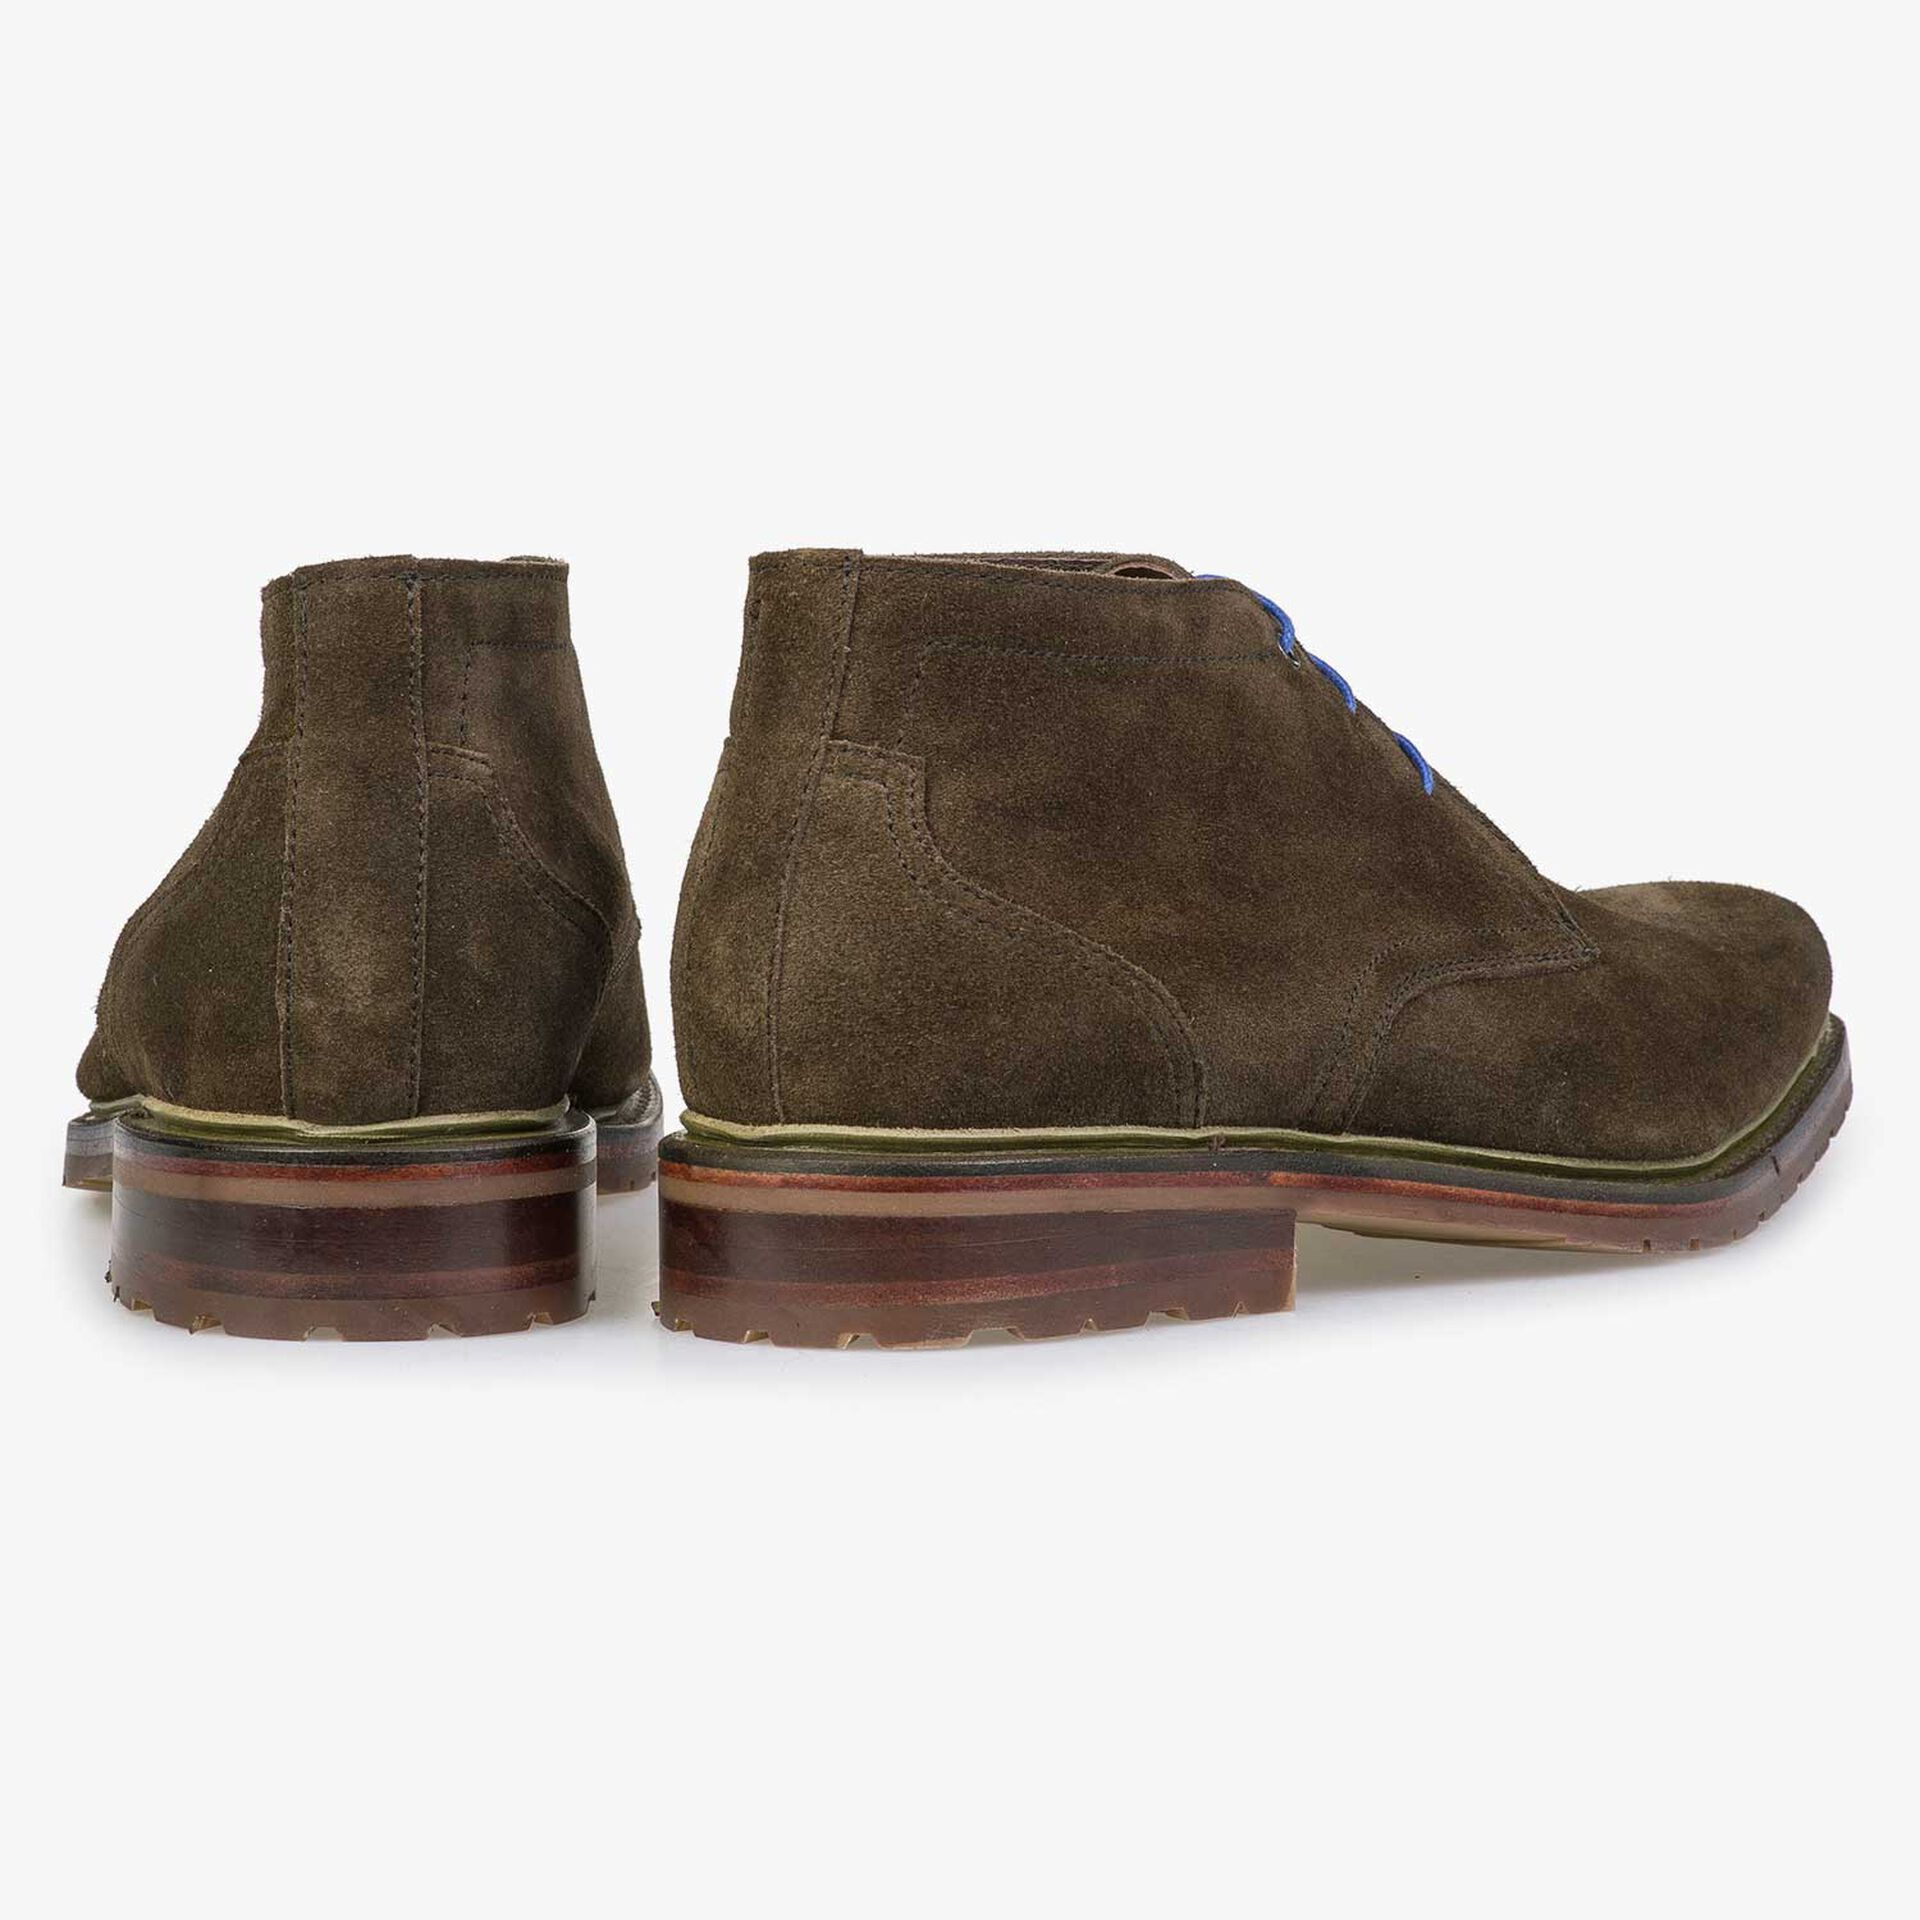 Brown/olive green calf suede leather lace boot